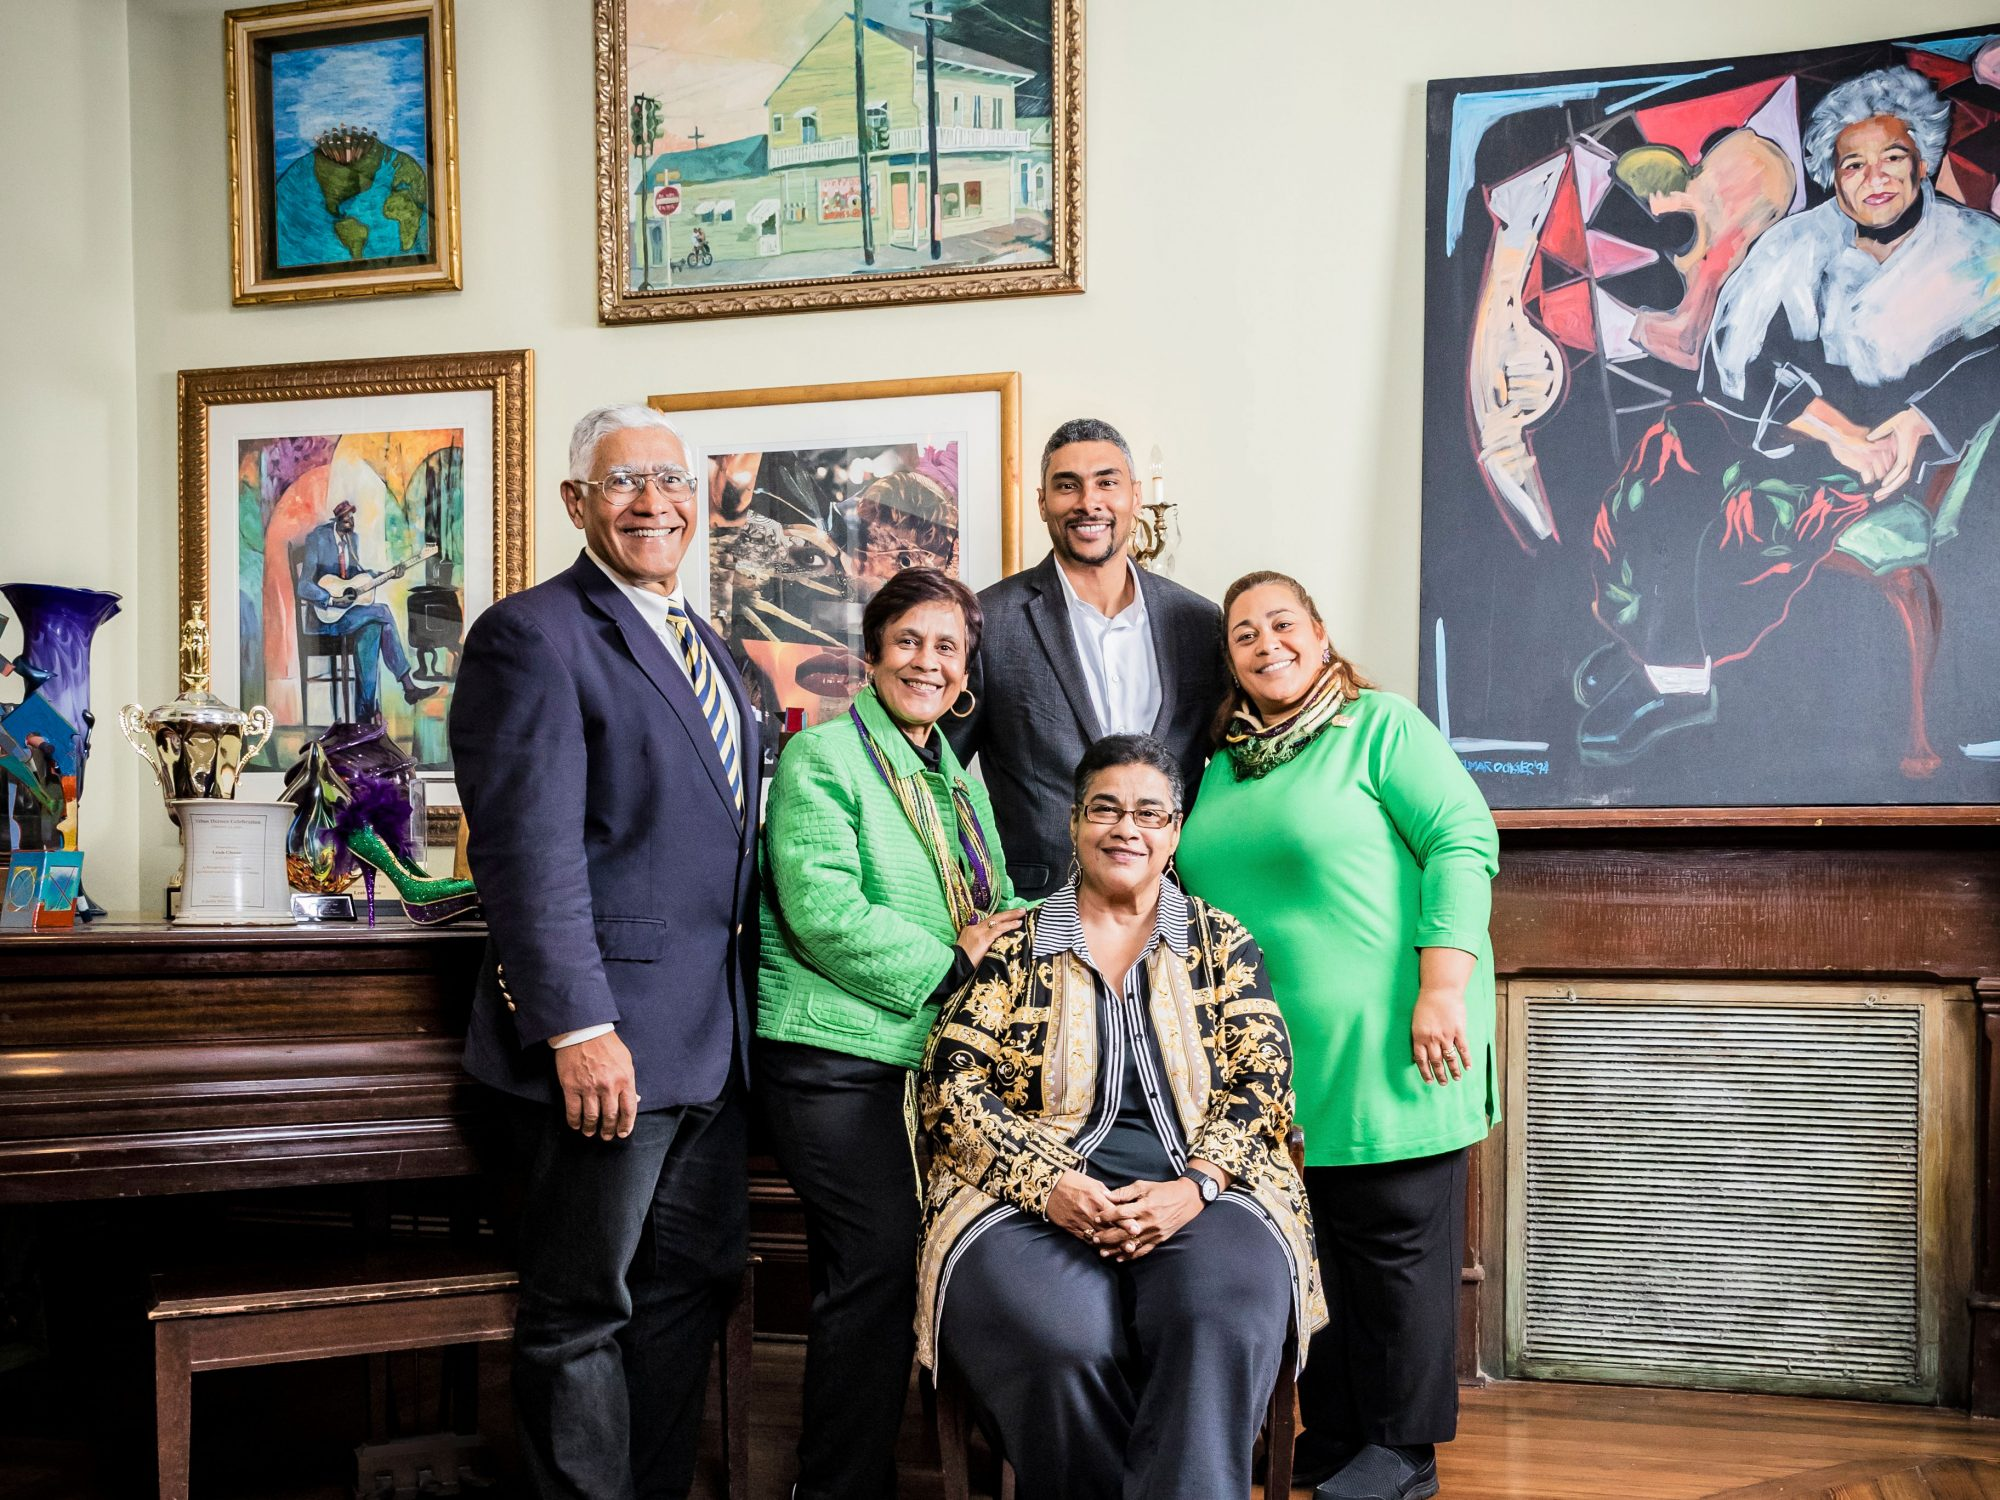 Family Members of Dooky Chase's Restaurant in New Orleans, LA